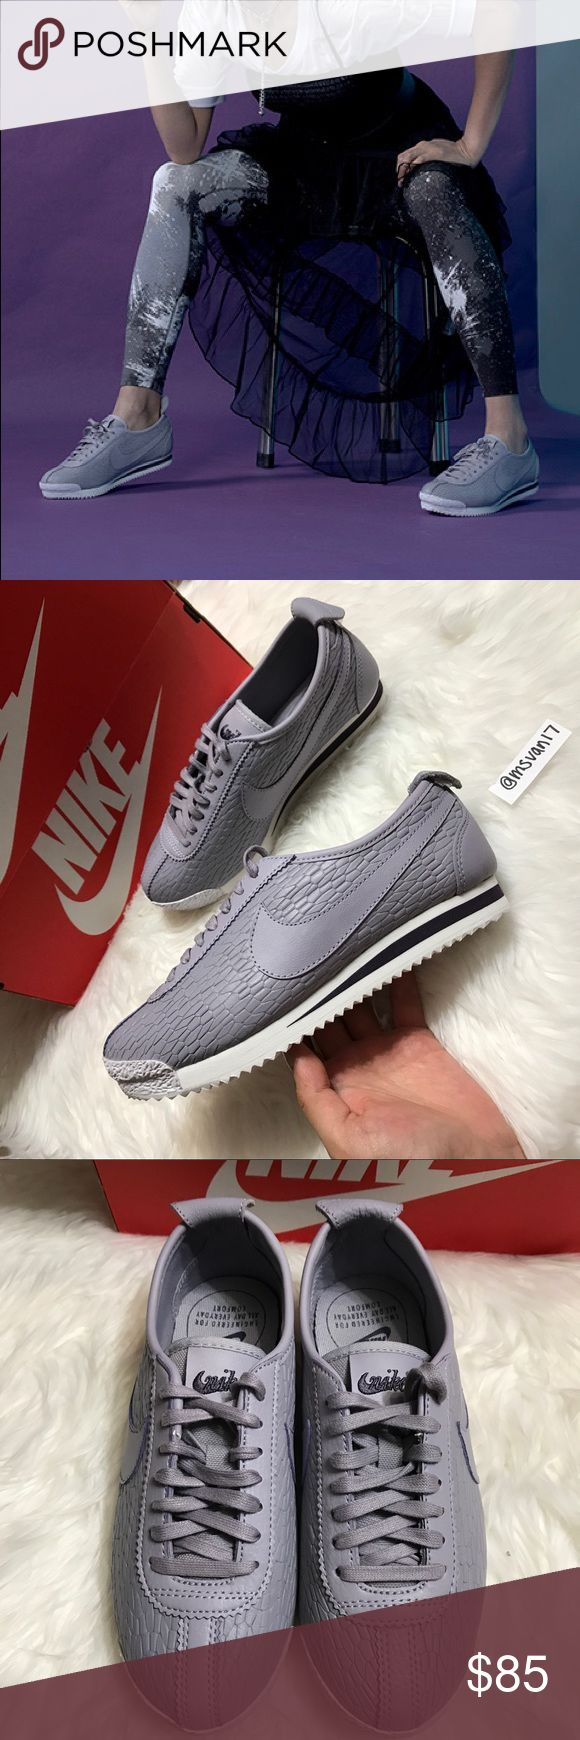 OFFER ME⚡️ Nike Cortez 72' Brand new with the  box but no lid. Color is Provence Purple Nike Shoes Athletic Shoes